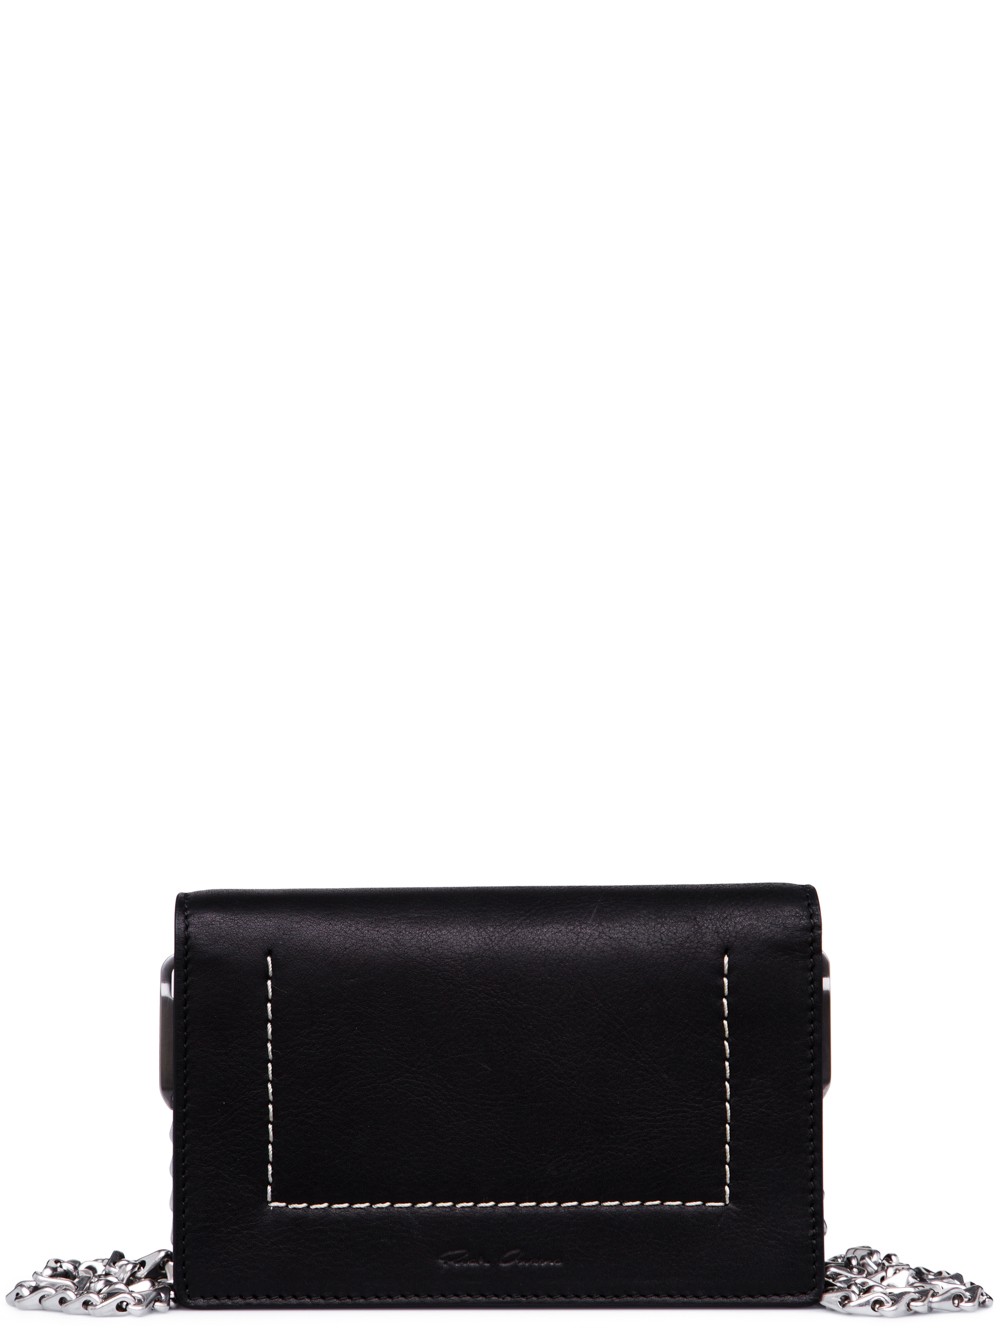 RICK OWENS FW18 SISYPHUS LUNCH BAG IN BLACK CALF LEATHER